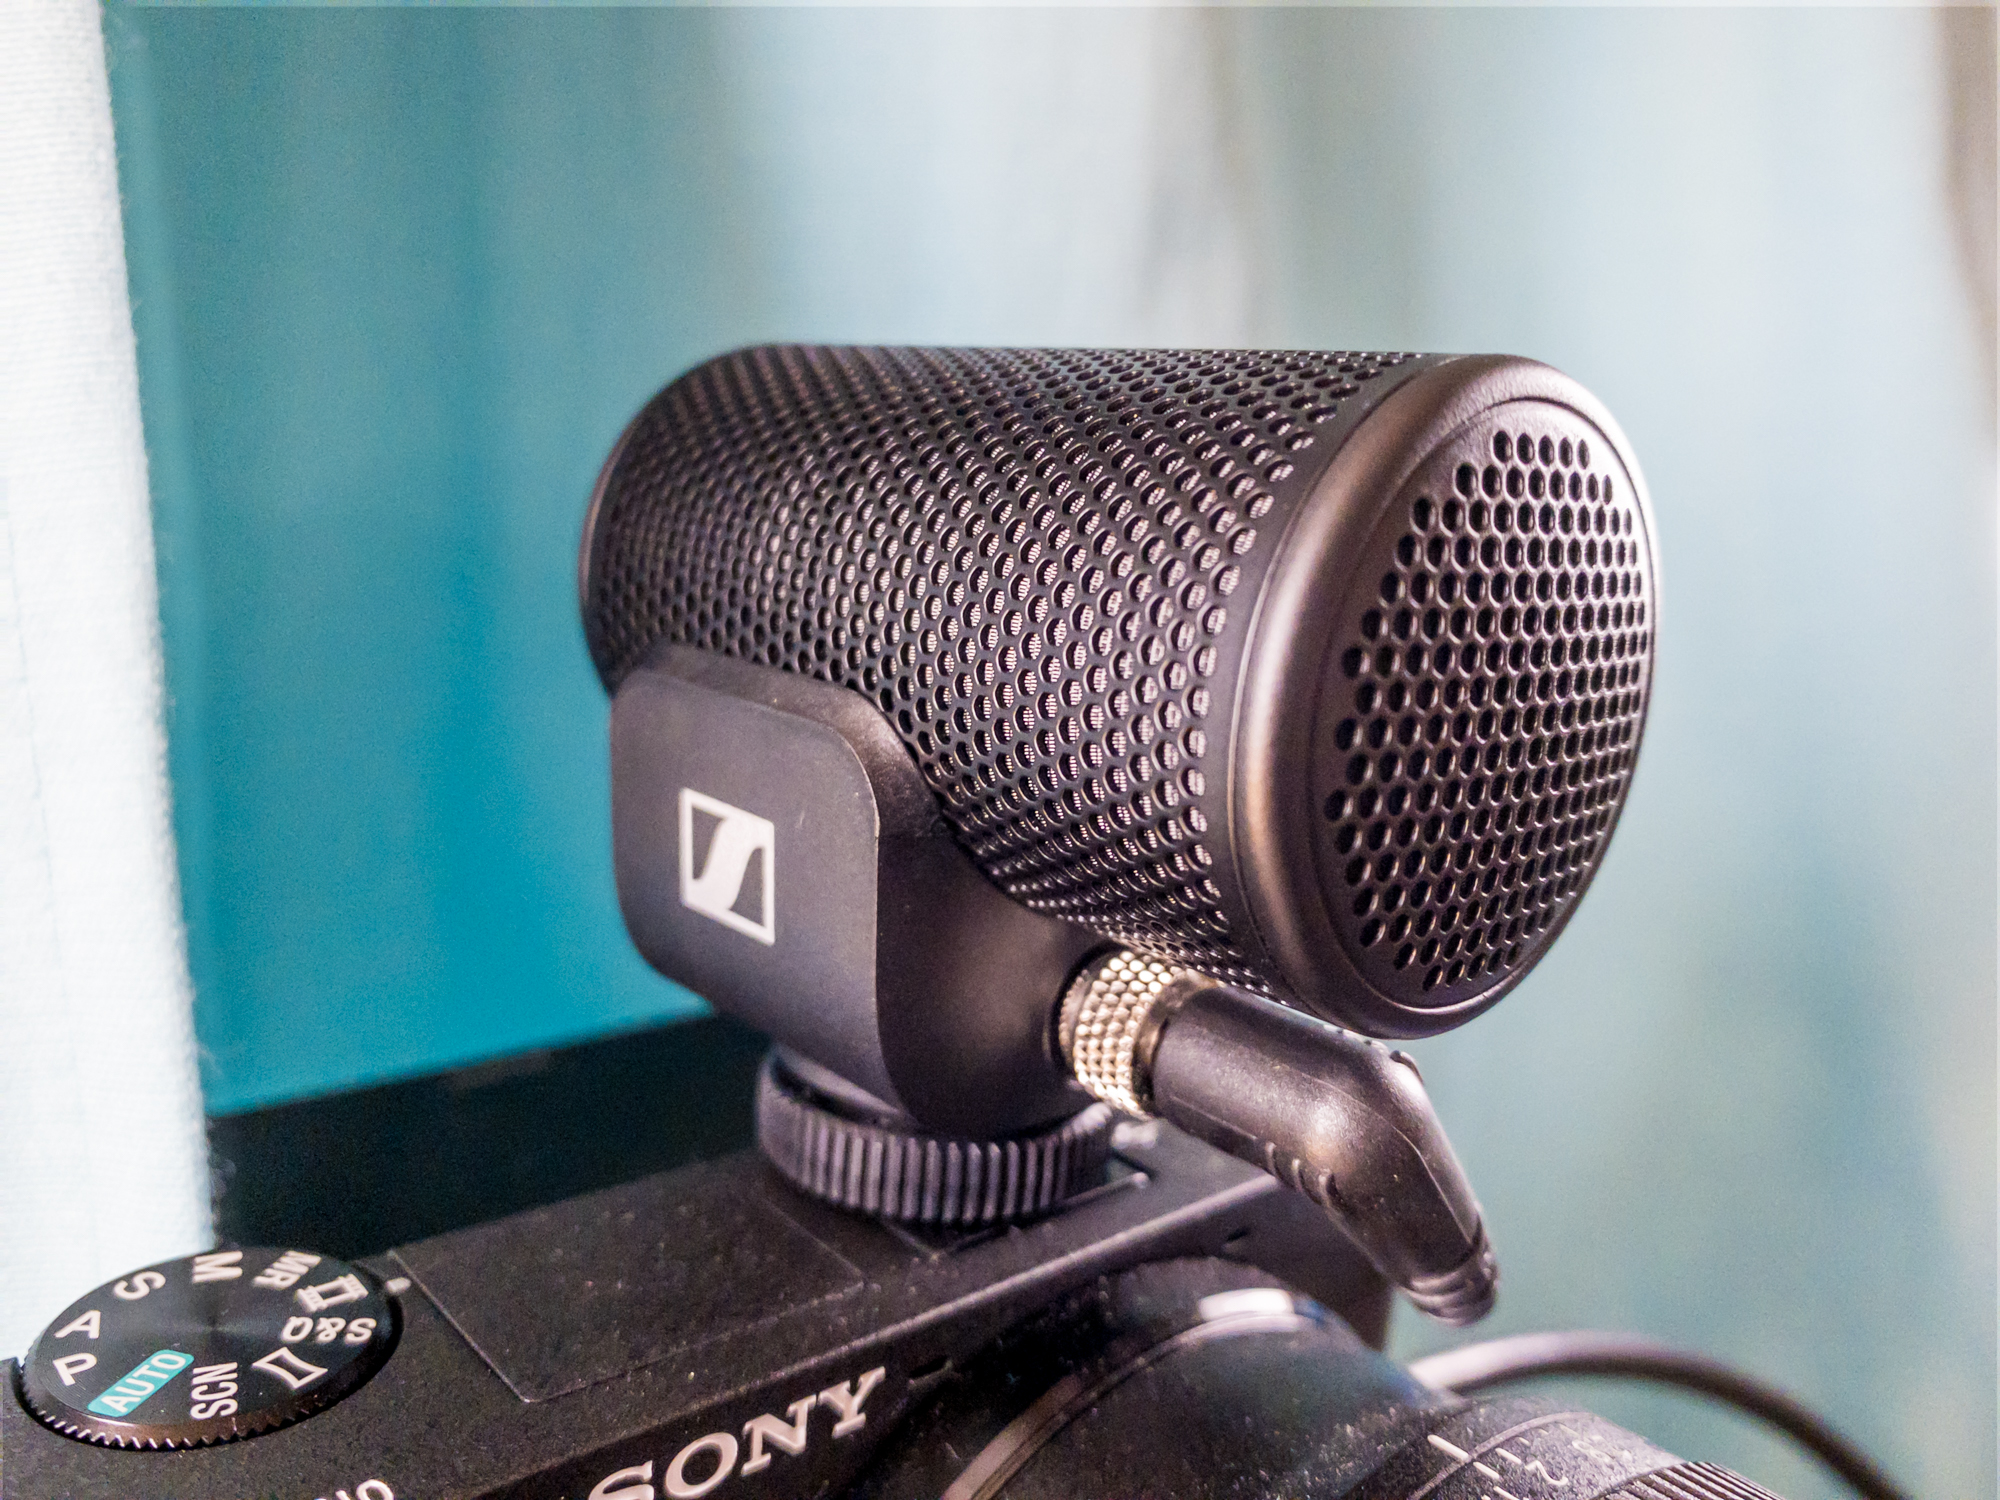 Sennheiser's MKE 200 on-camera microphone is the perfect home videoconferencing upgrade – TechCrunch